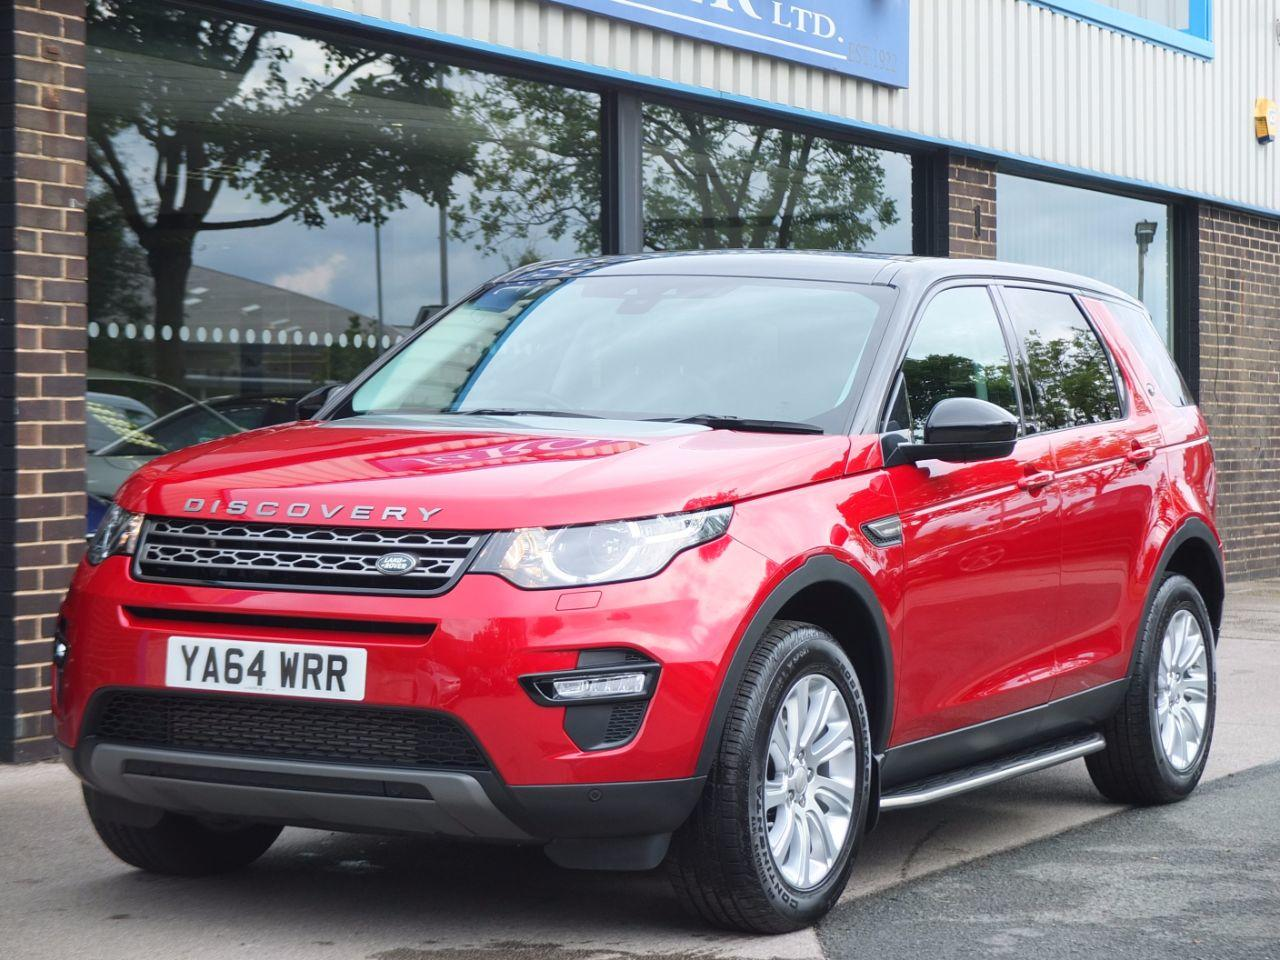 Land Rover Discovery Sport 2.2 SD4 SE Tech (Panoramic Roof) Estate Diesel Firenze RedLand Rover Discovery Sport 2.2 SD4 SE Tech (Panoramic Roof) Estate Diesel Firenze Red at fa Roper Ltd Bradford